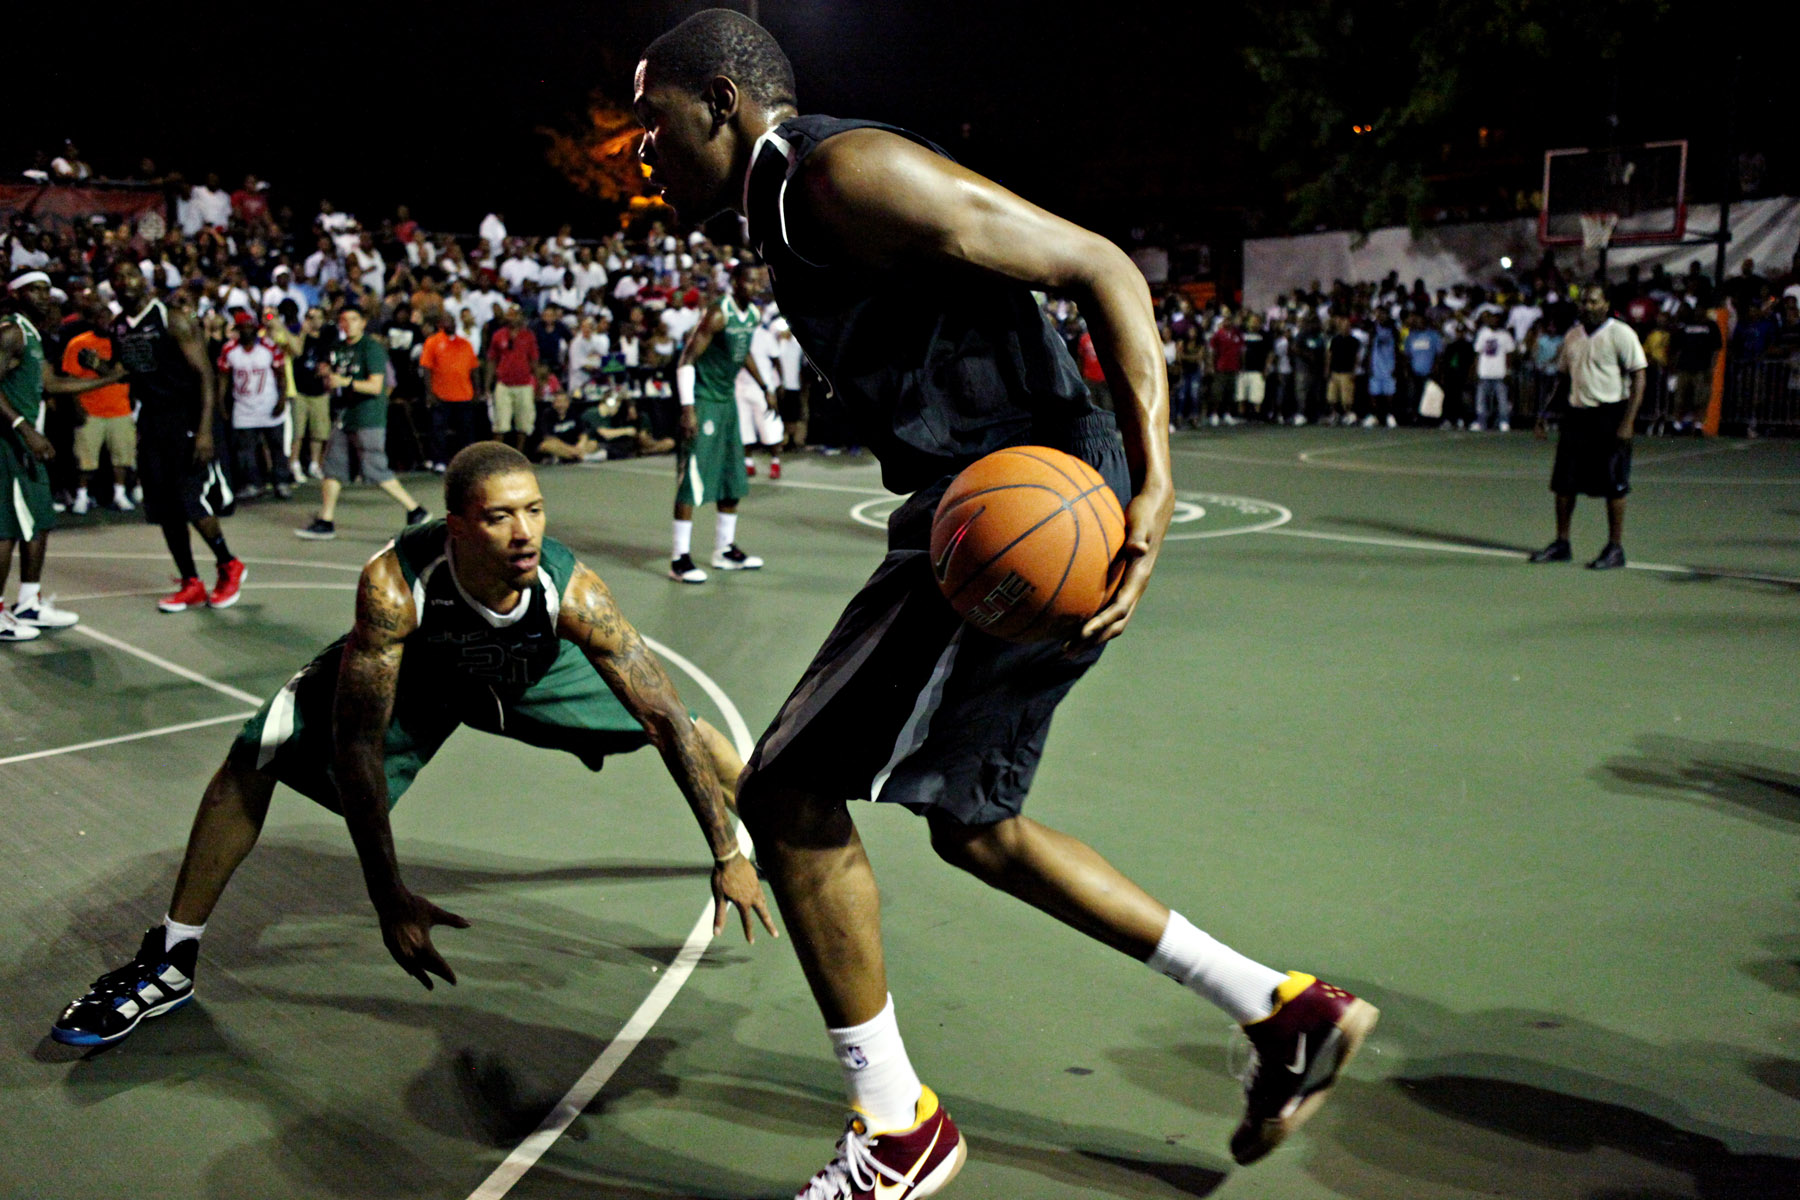 History of Dyckman Basketball Tournament + Best of Durant at Dyckman